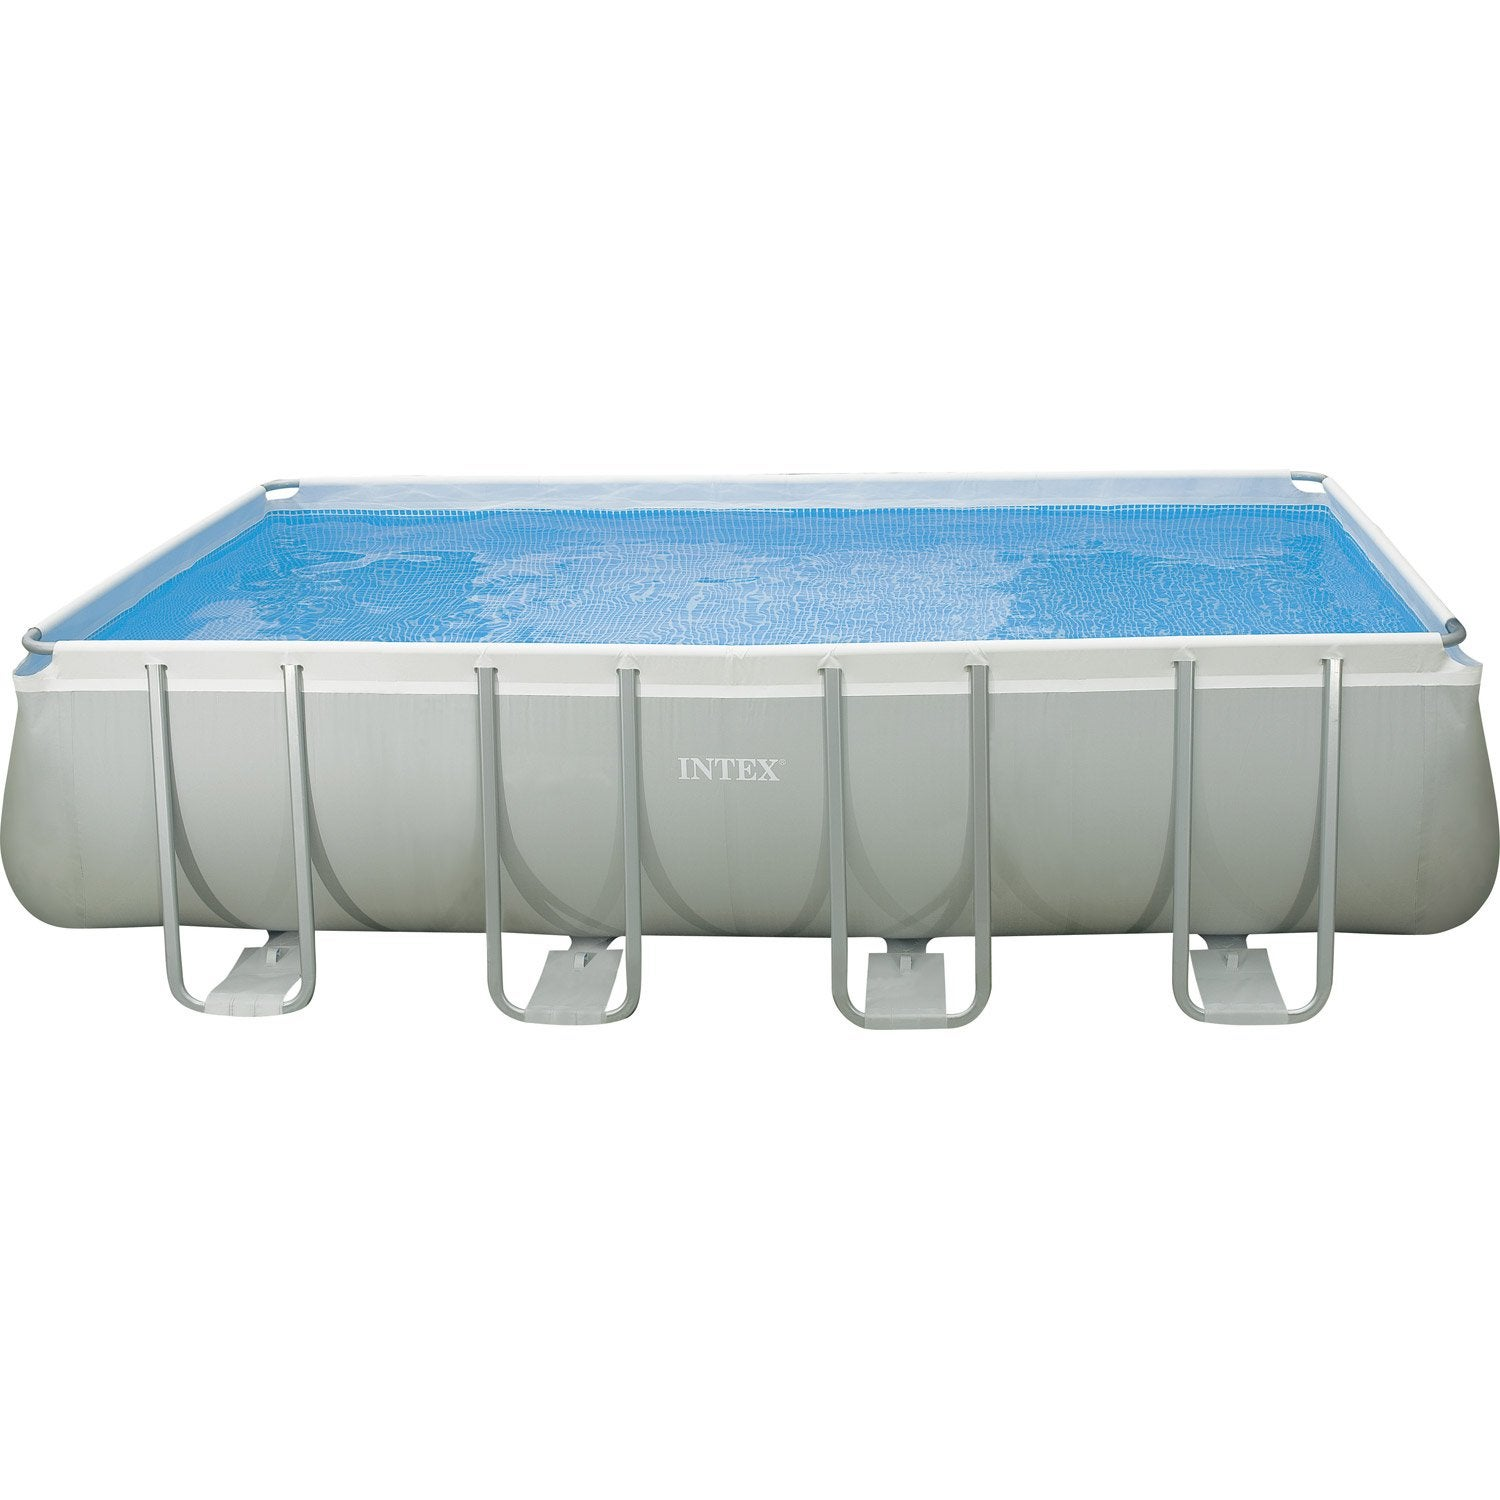 Piscine hors sol autoportante tubulaire intex l x l for Piscine hors sol rectangulaire 4x3